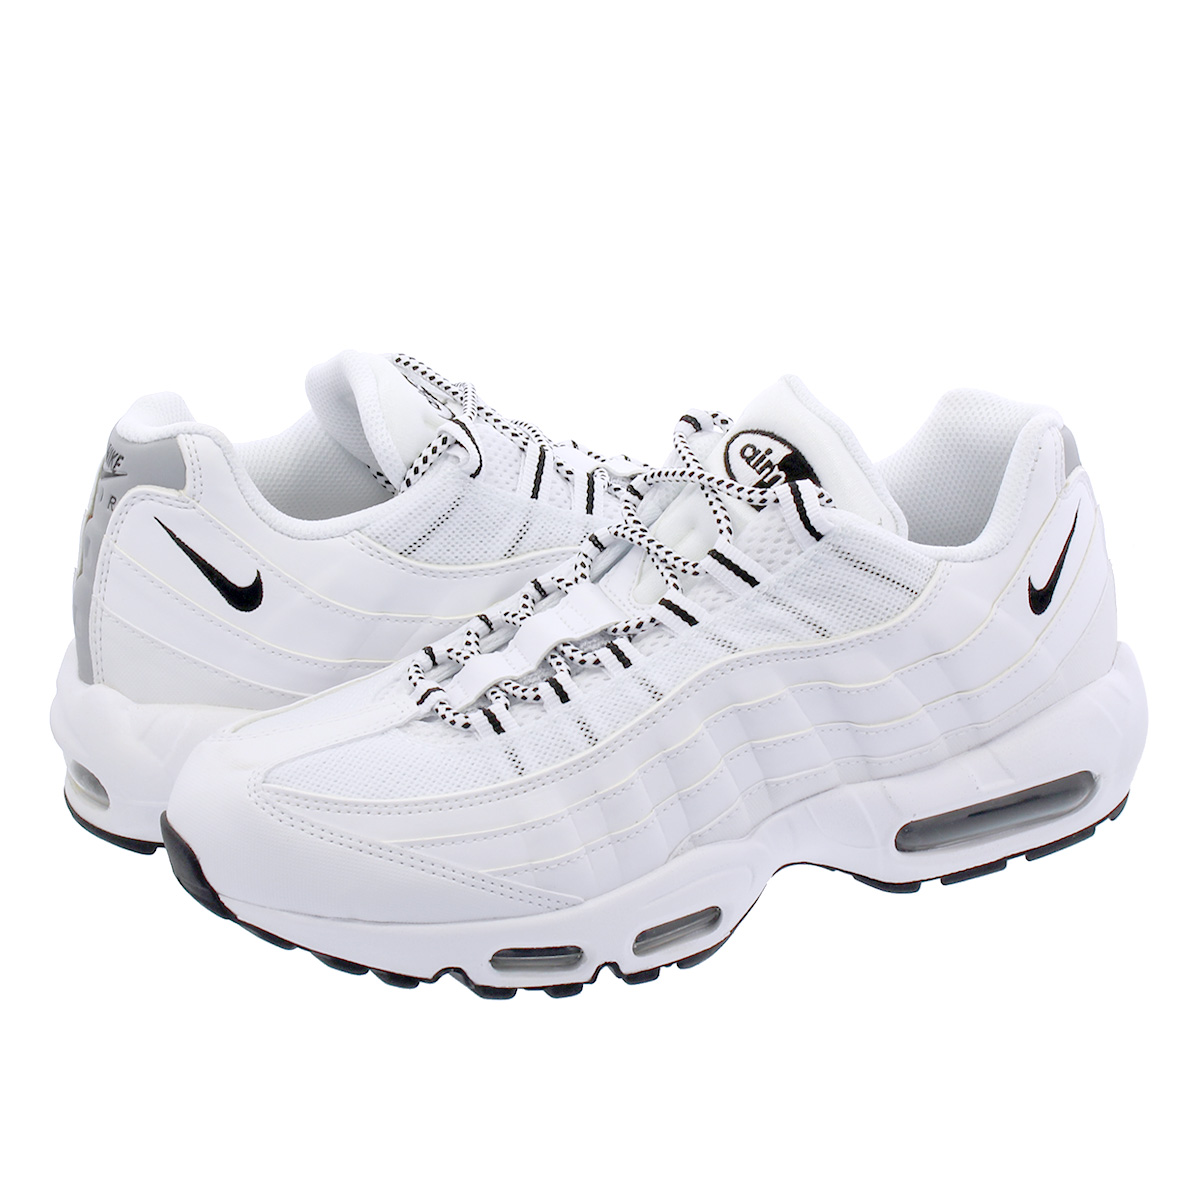 brand new 4a2c6 885a5 NIKE AIR MAX 95 Nike Air Max 95 WHITE BLACK